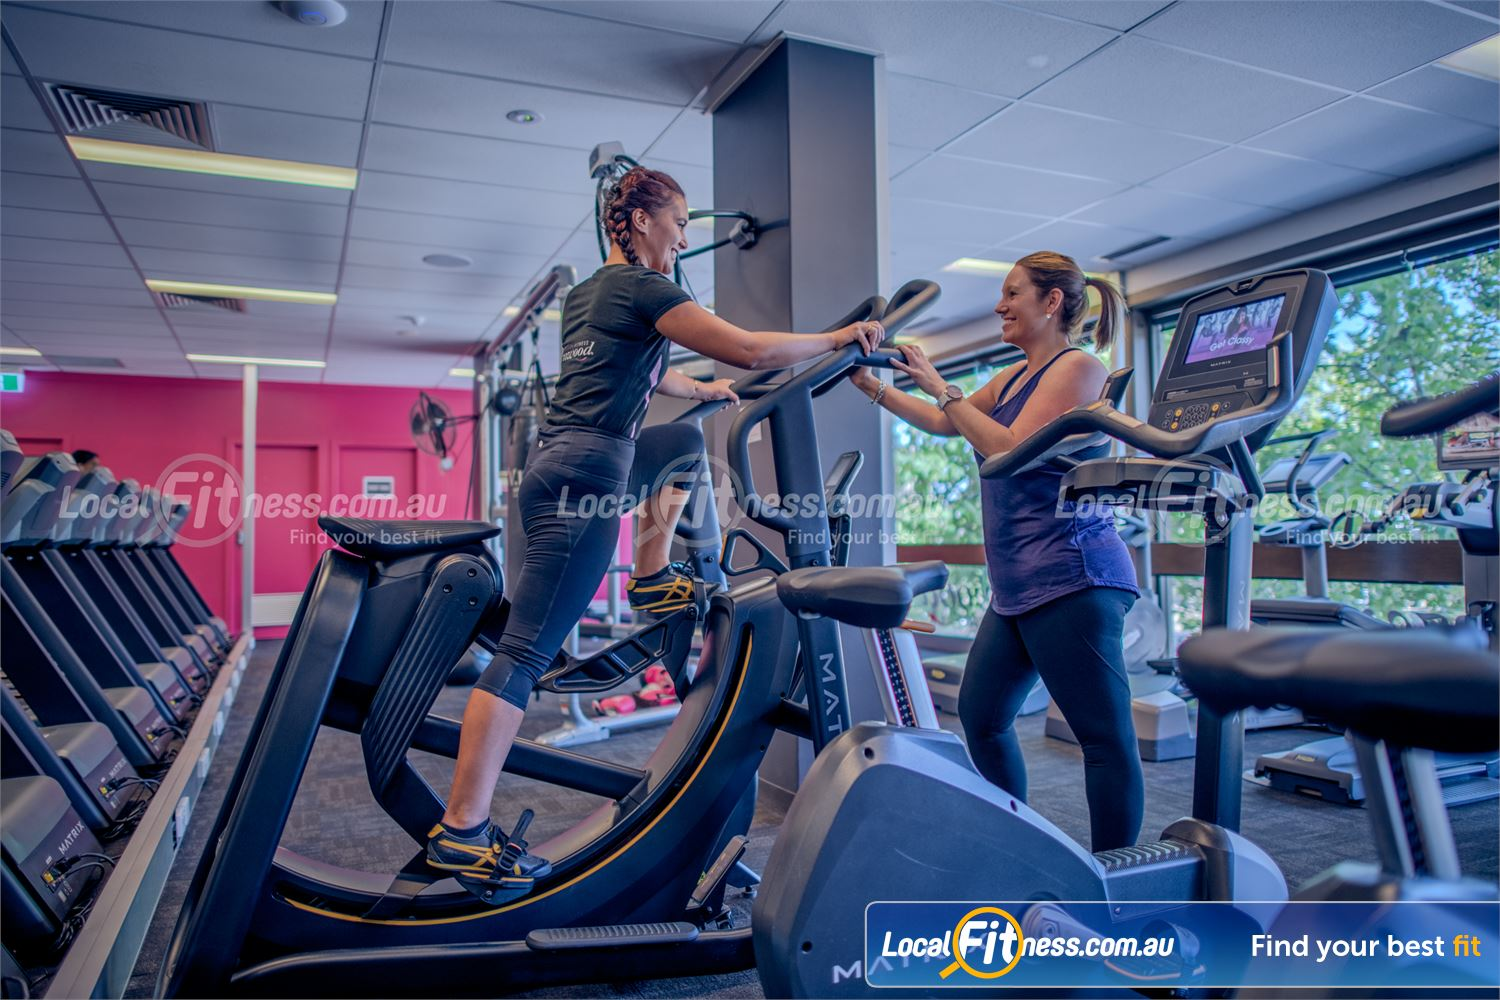 Fernwood Fitness St Kilda Our St Kilda gym team can help you with your cardio goals.